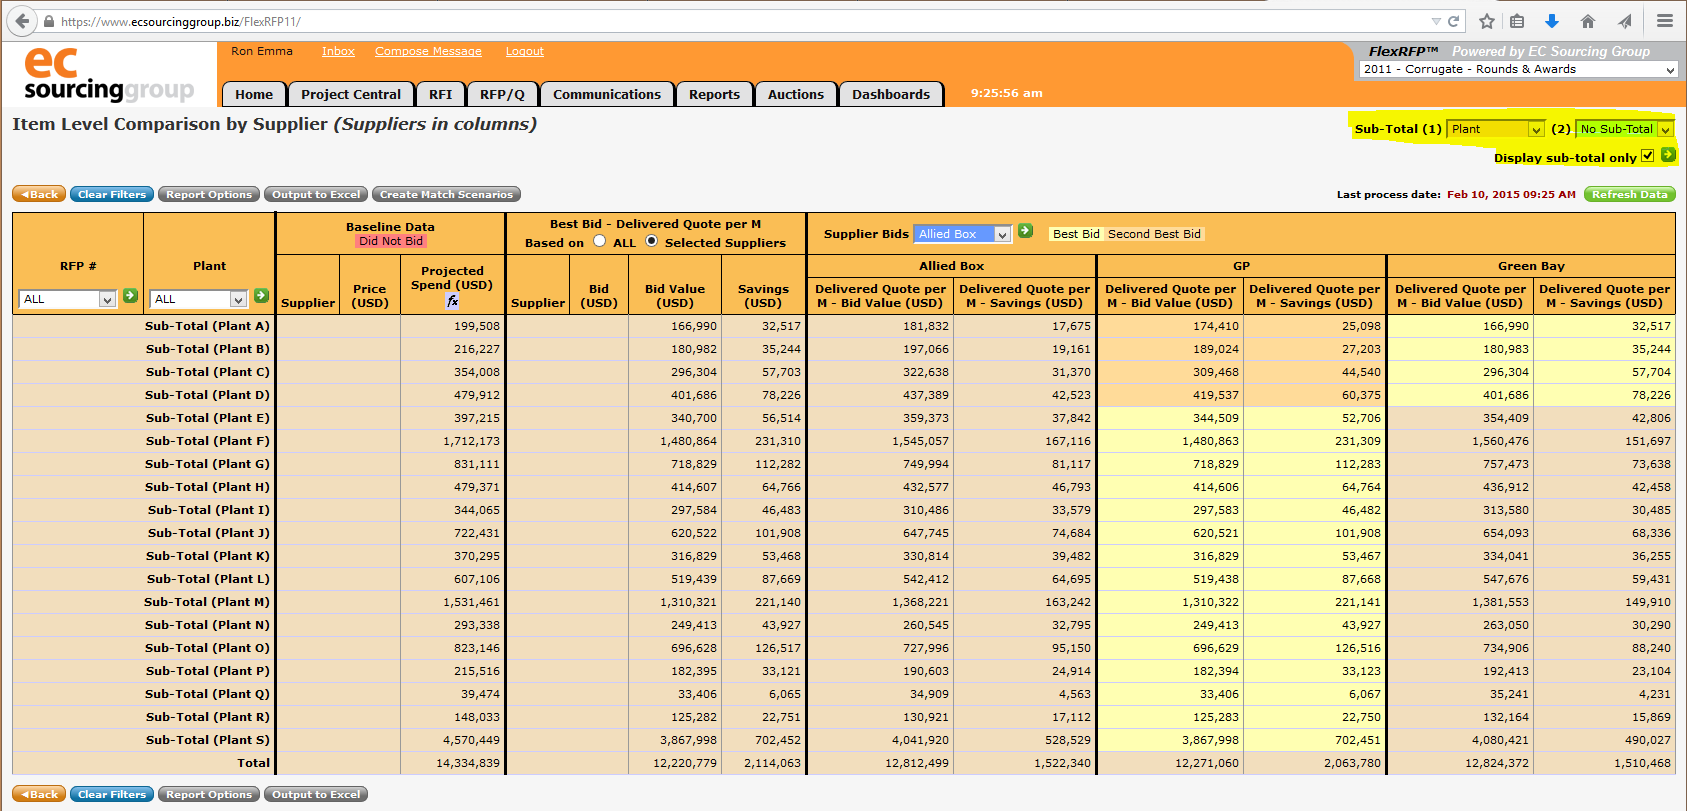 Bid Analysis Report in Subtotal Only View